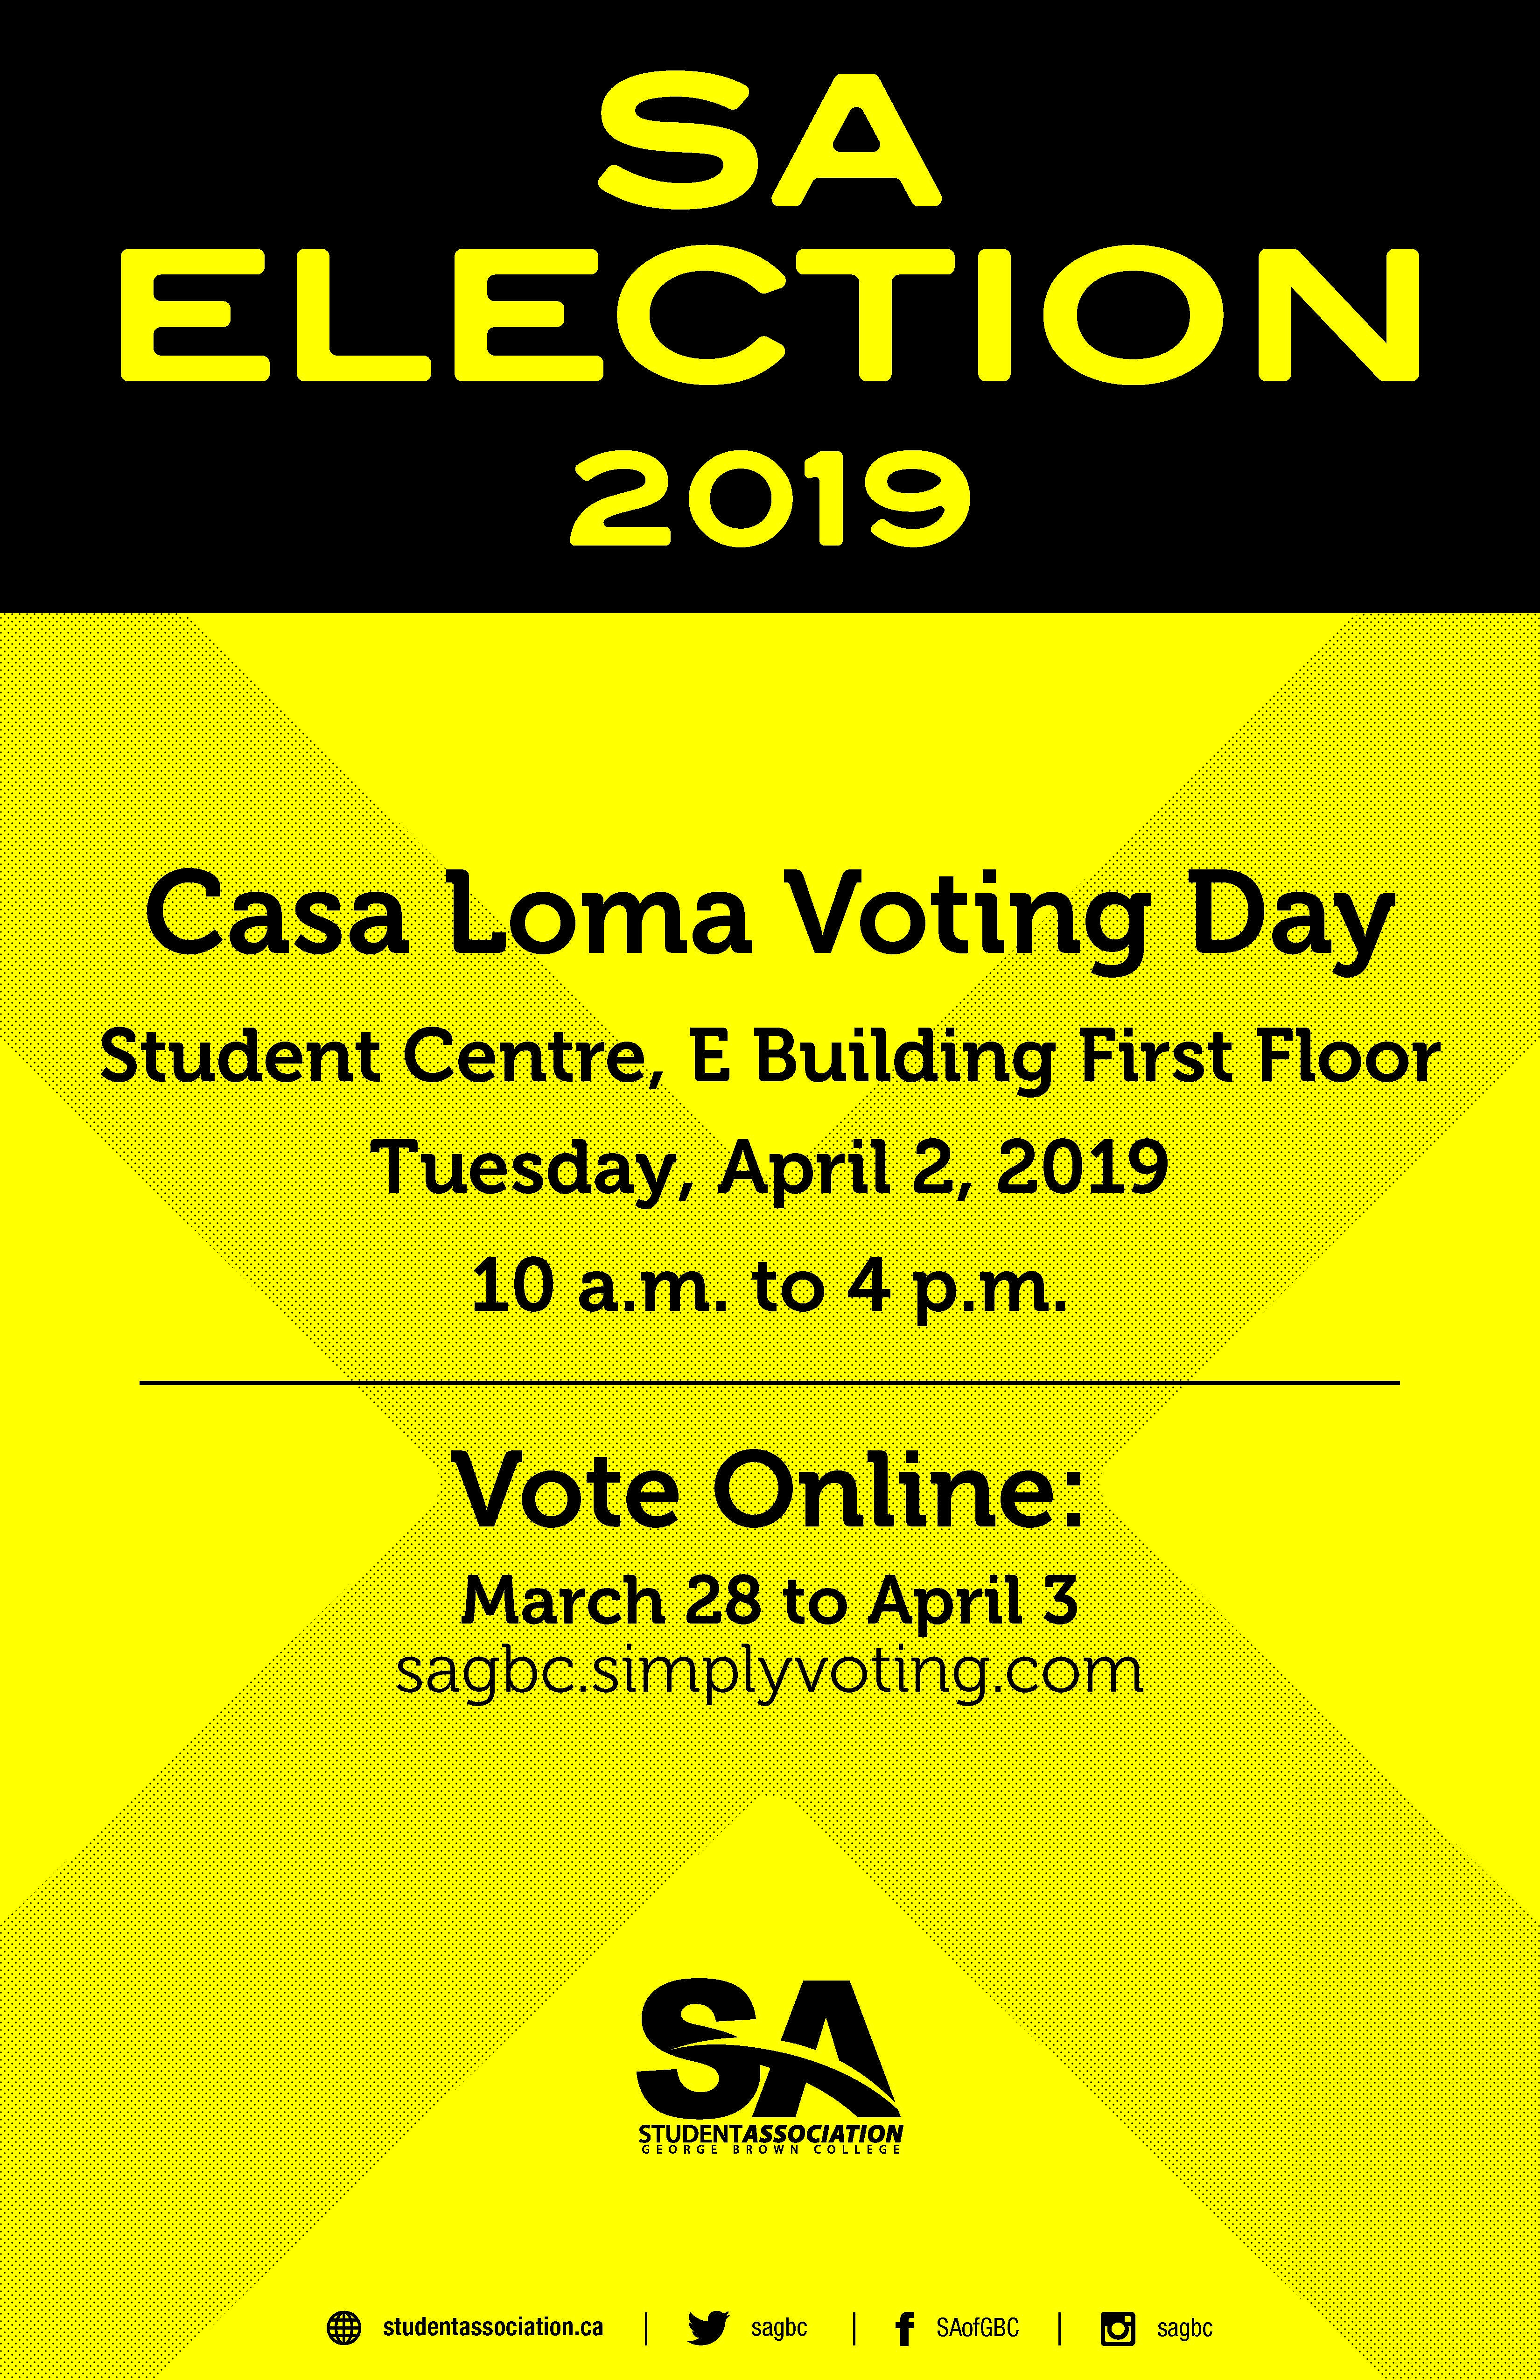 Vote in the Student Association elections!  Casa Loma Voting Day Tuesday, April 2.  10 a.m to 4 p.m. Casa Loma Student Centre, E Building, First Floor. 142 Kendal Ave.   Or vote online anytime between March 28 and April 3 at: https://sagbc.simplyvoting.com/